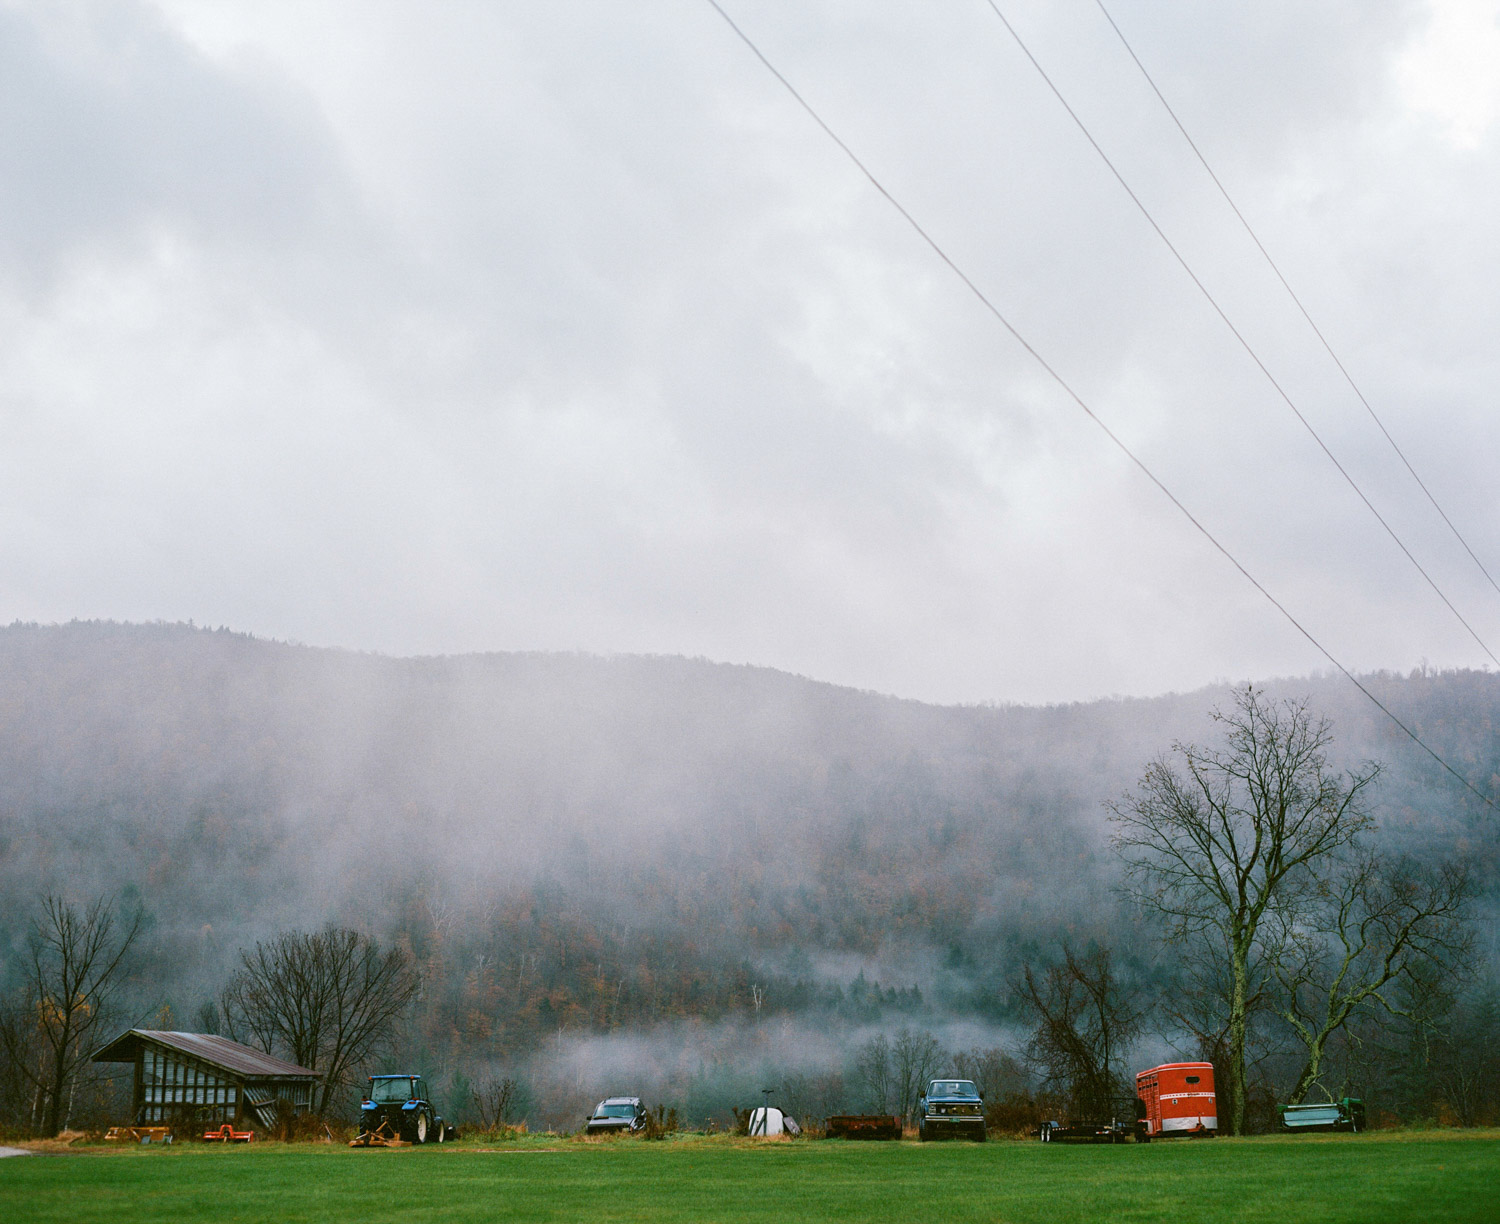 Pittsfield Vermont farm on foggy day